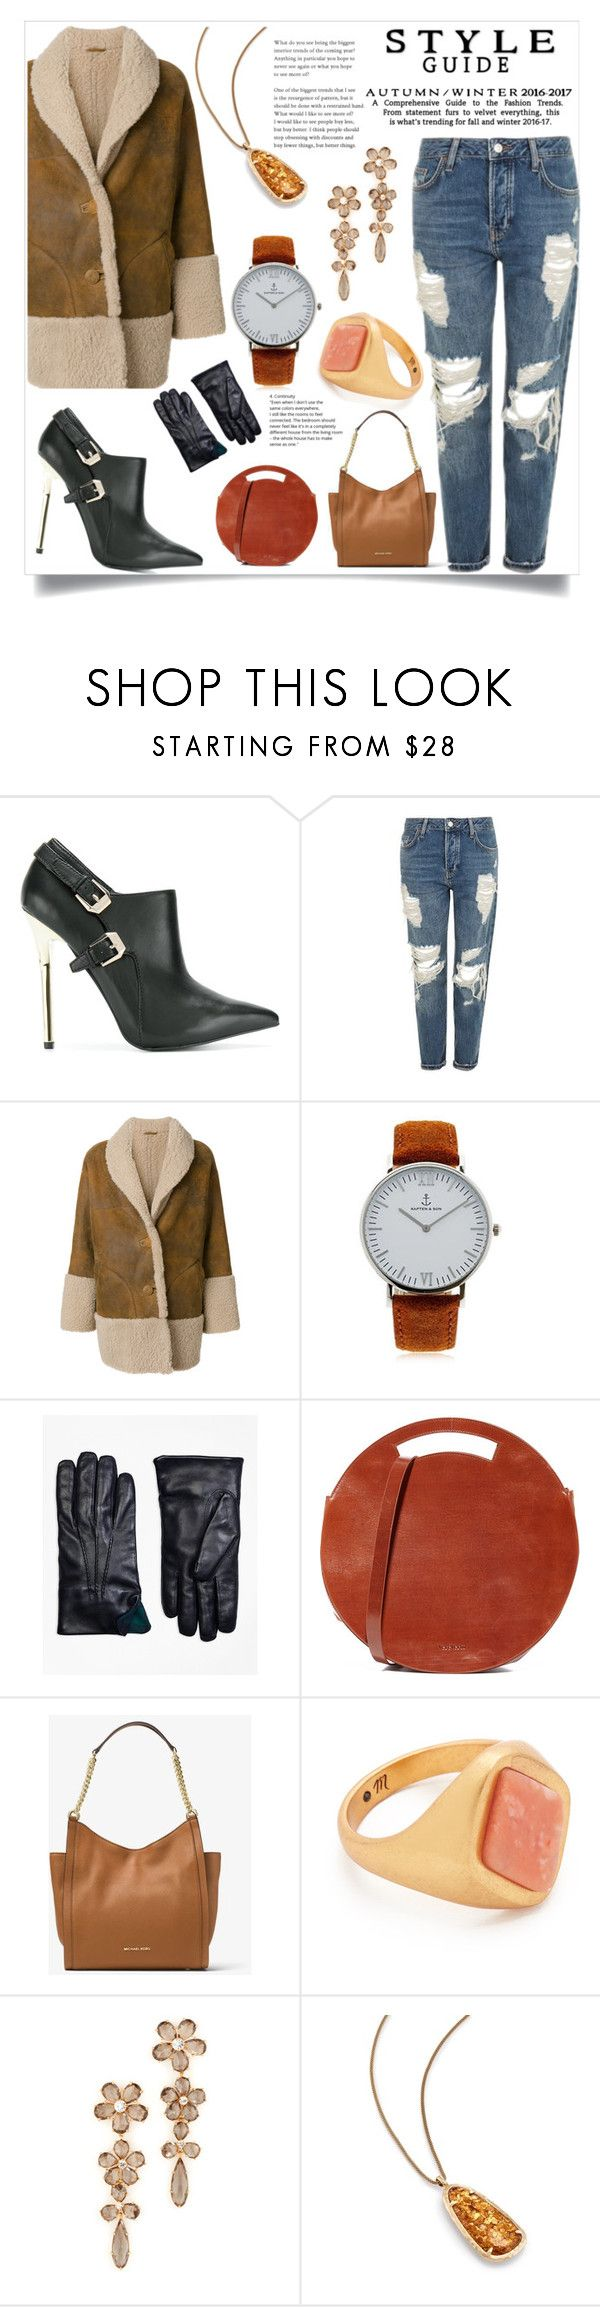 """""""All about Style"""" by justinallison ❤ liked on Polyvore featuring Versace, Topshop, M.i.h Jeans, Kapten & Son, Brooks Brothers, VereVerto, MICHAEL Michael Kors, Madewell, Kate Spade and Kendra Scott"""